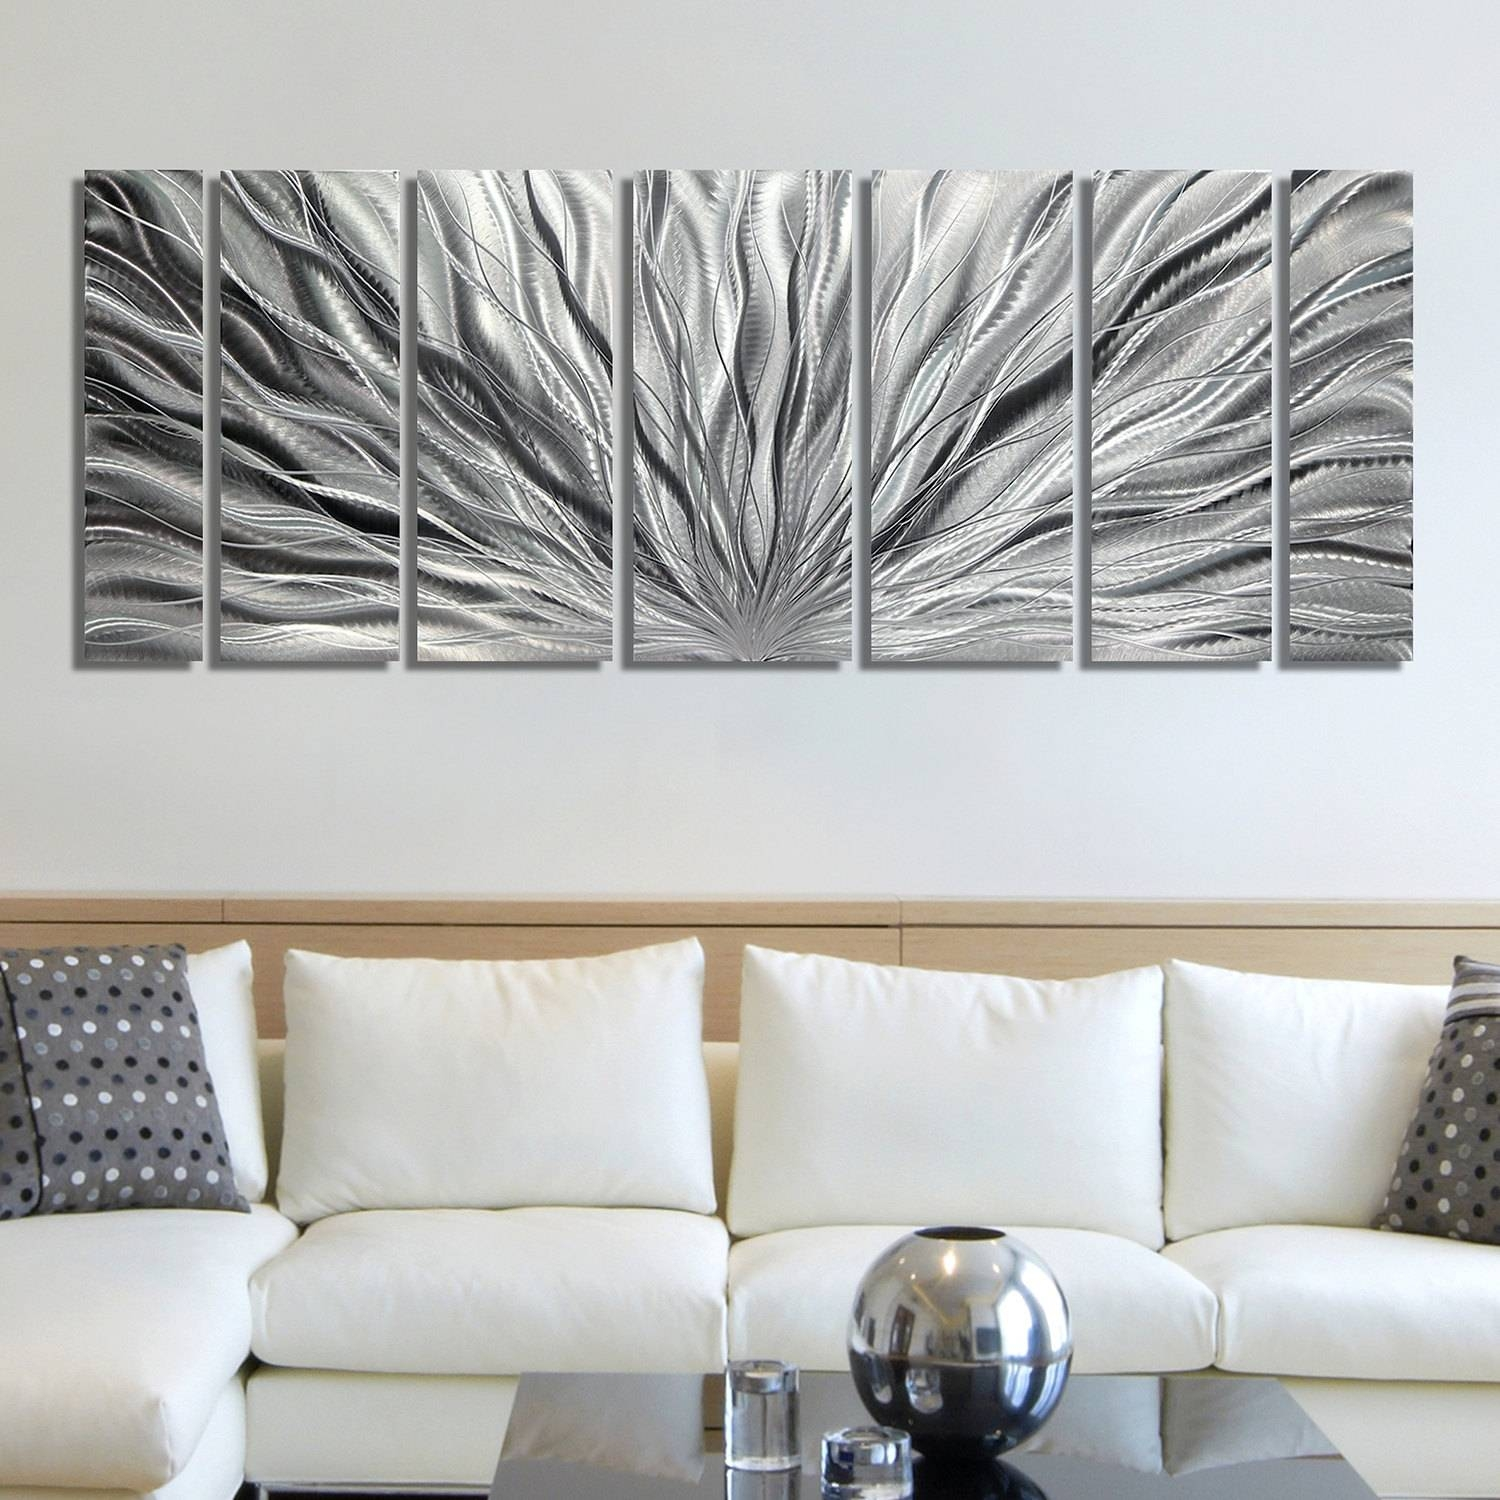 Sale Large Multi Panel Metal Wall Art In All Silver In Most Recent Large Metal Wall Art Sculptures (View 8 of 20)